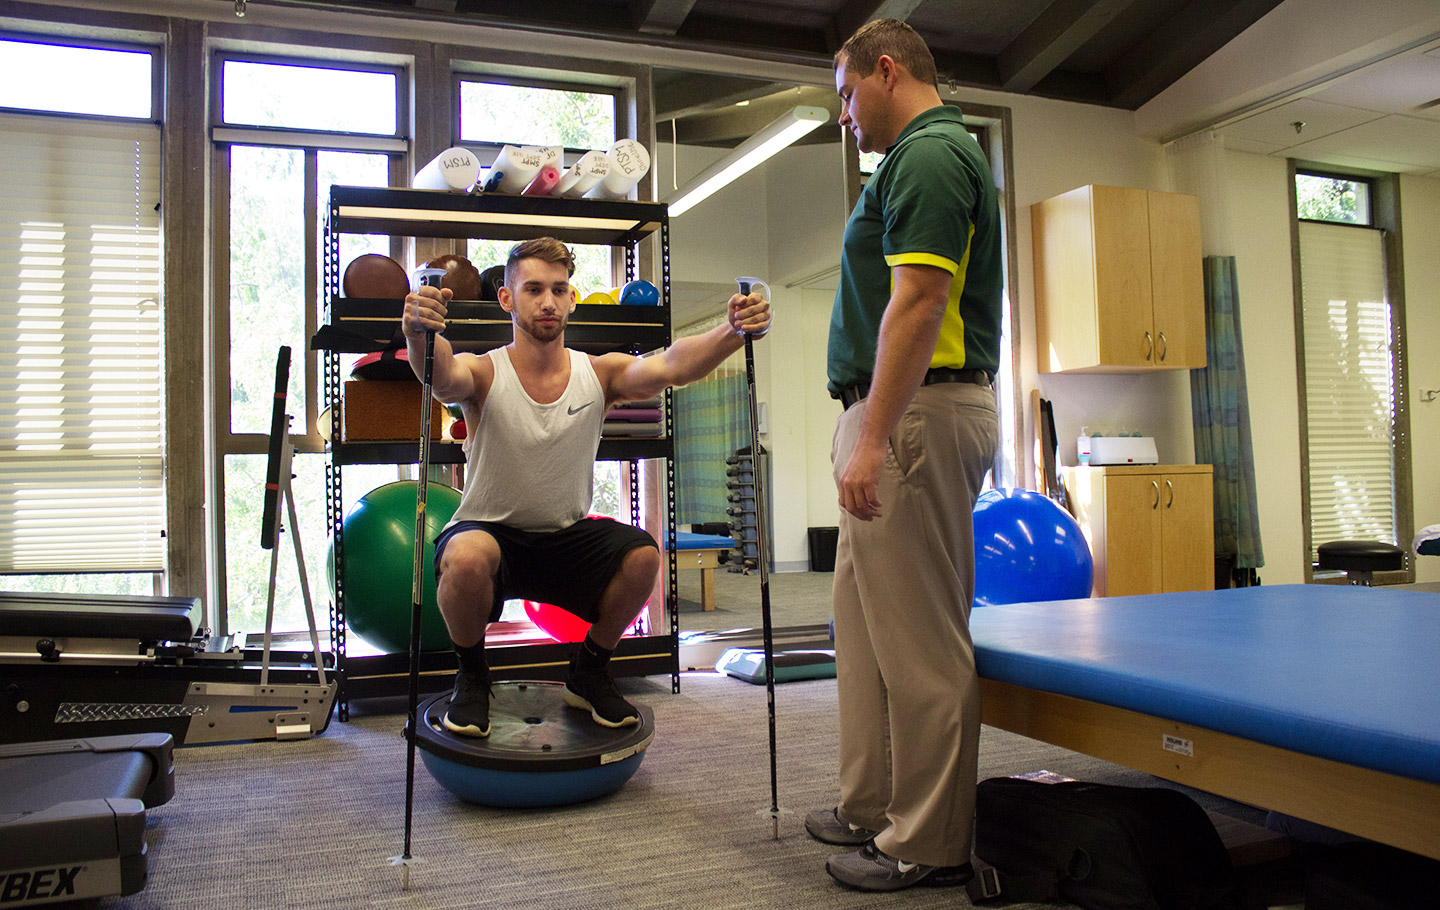 A student doing squats on a balance ball with a physical therapist advising him.